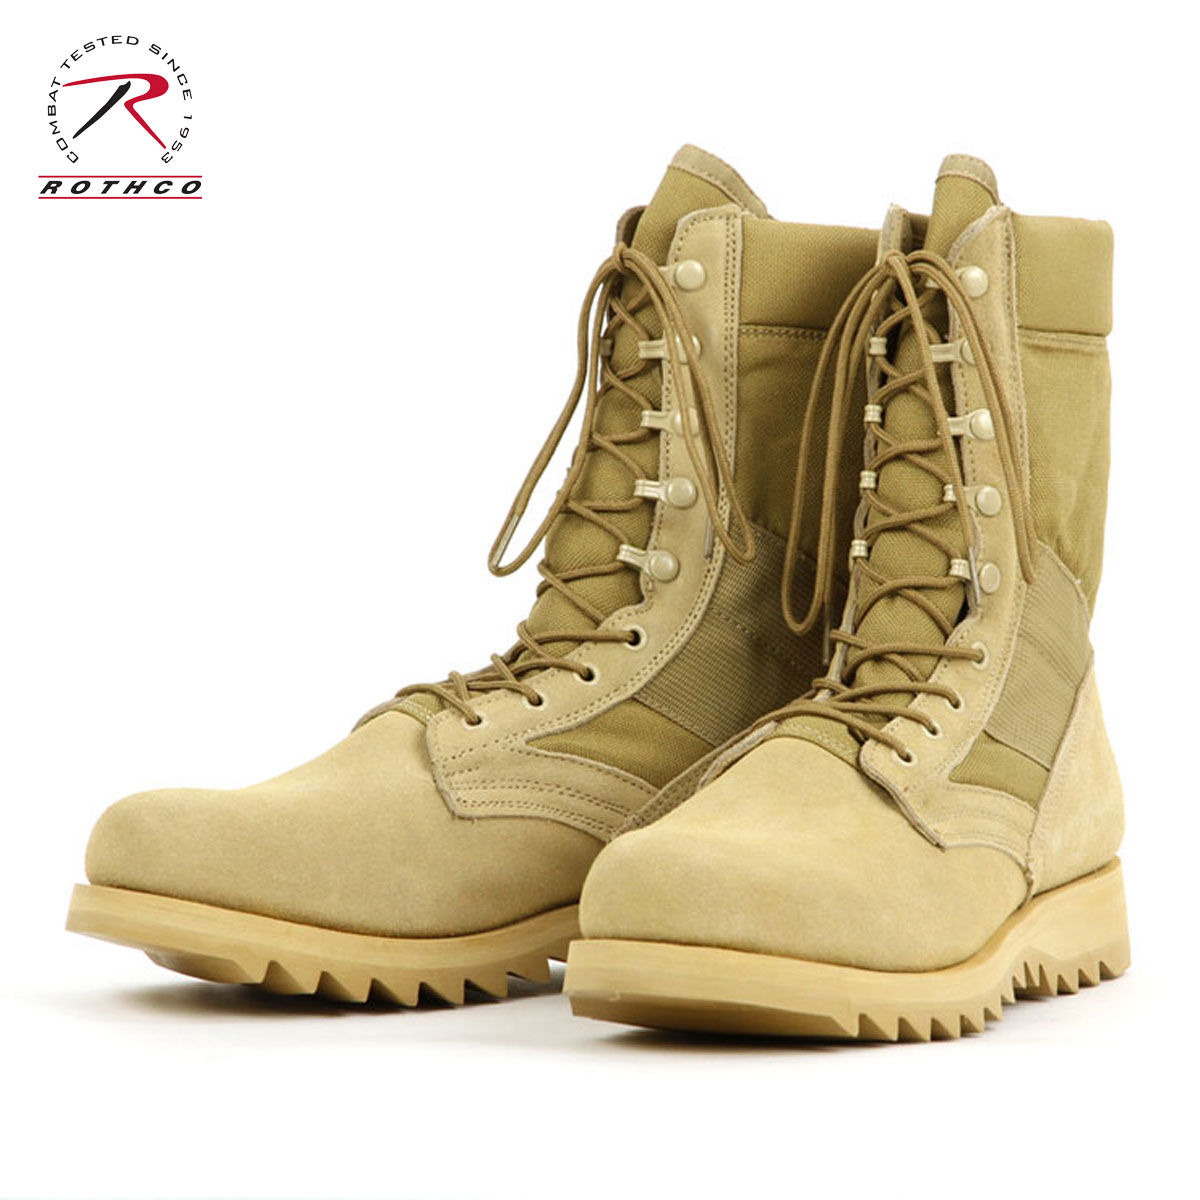 ロスコ ROTHCO 正規品 メンズ ブーツ G.I. Type Desert Tan Ripple Sole Jungle Boots 5058 D00S20